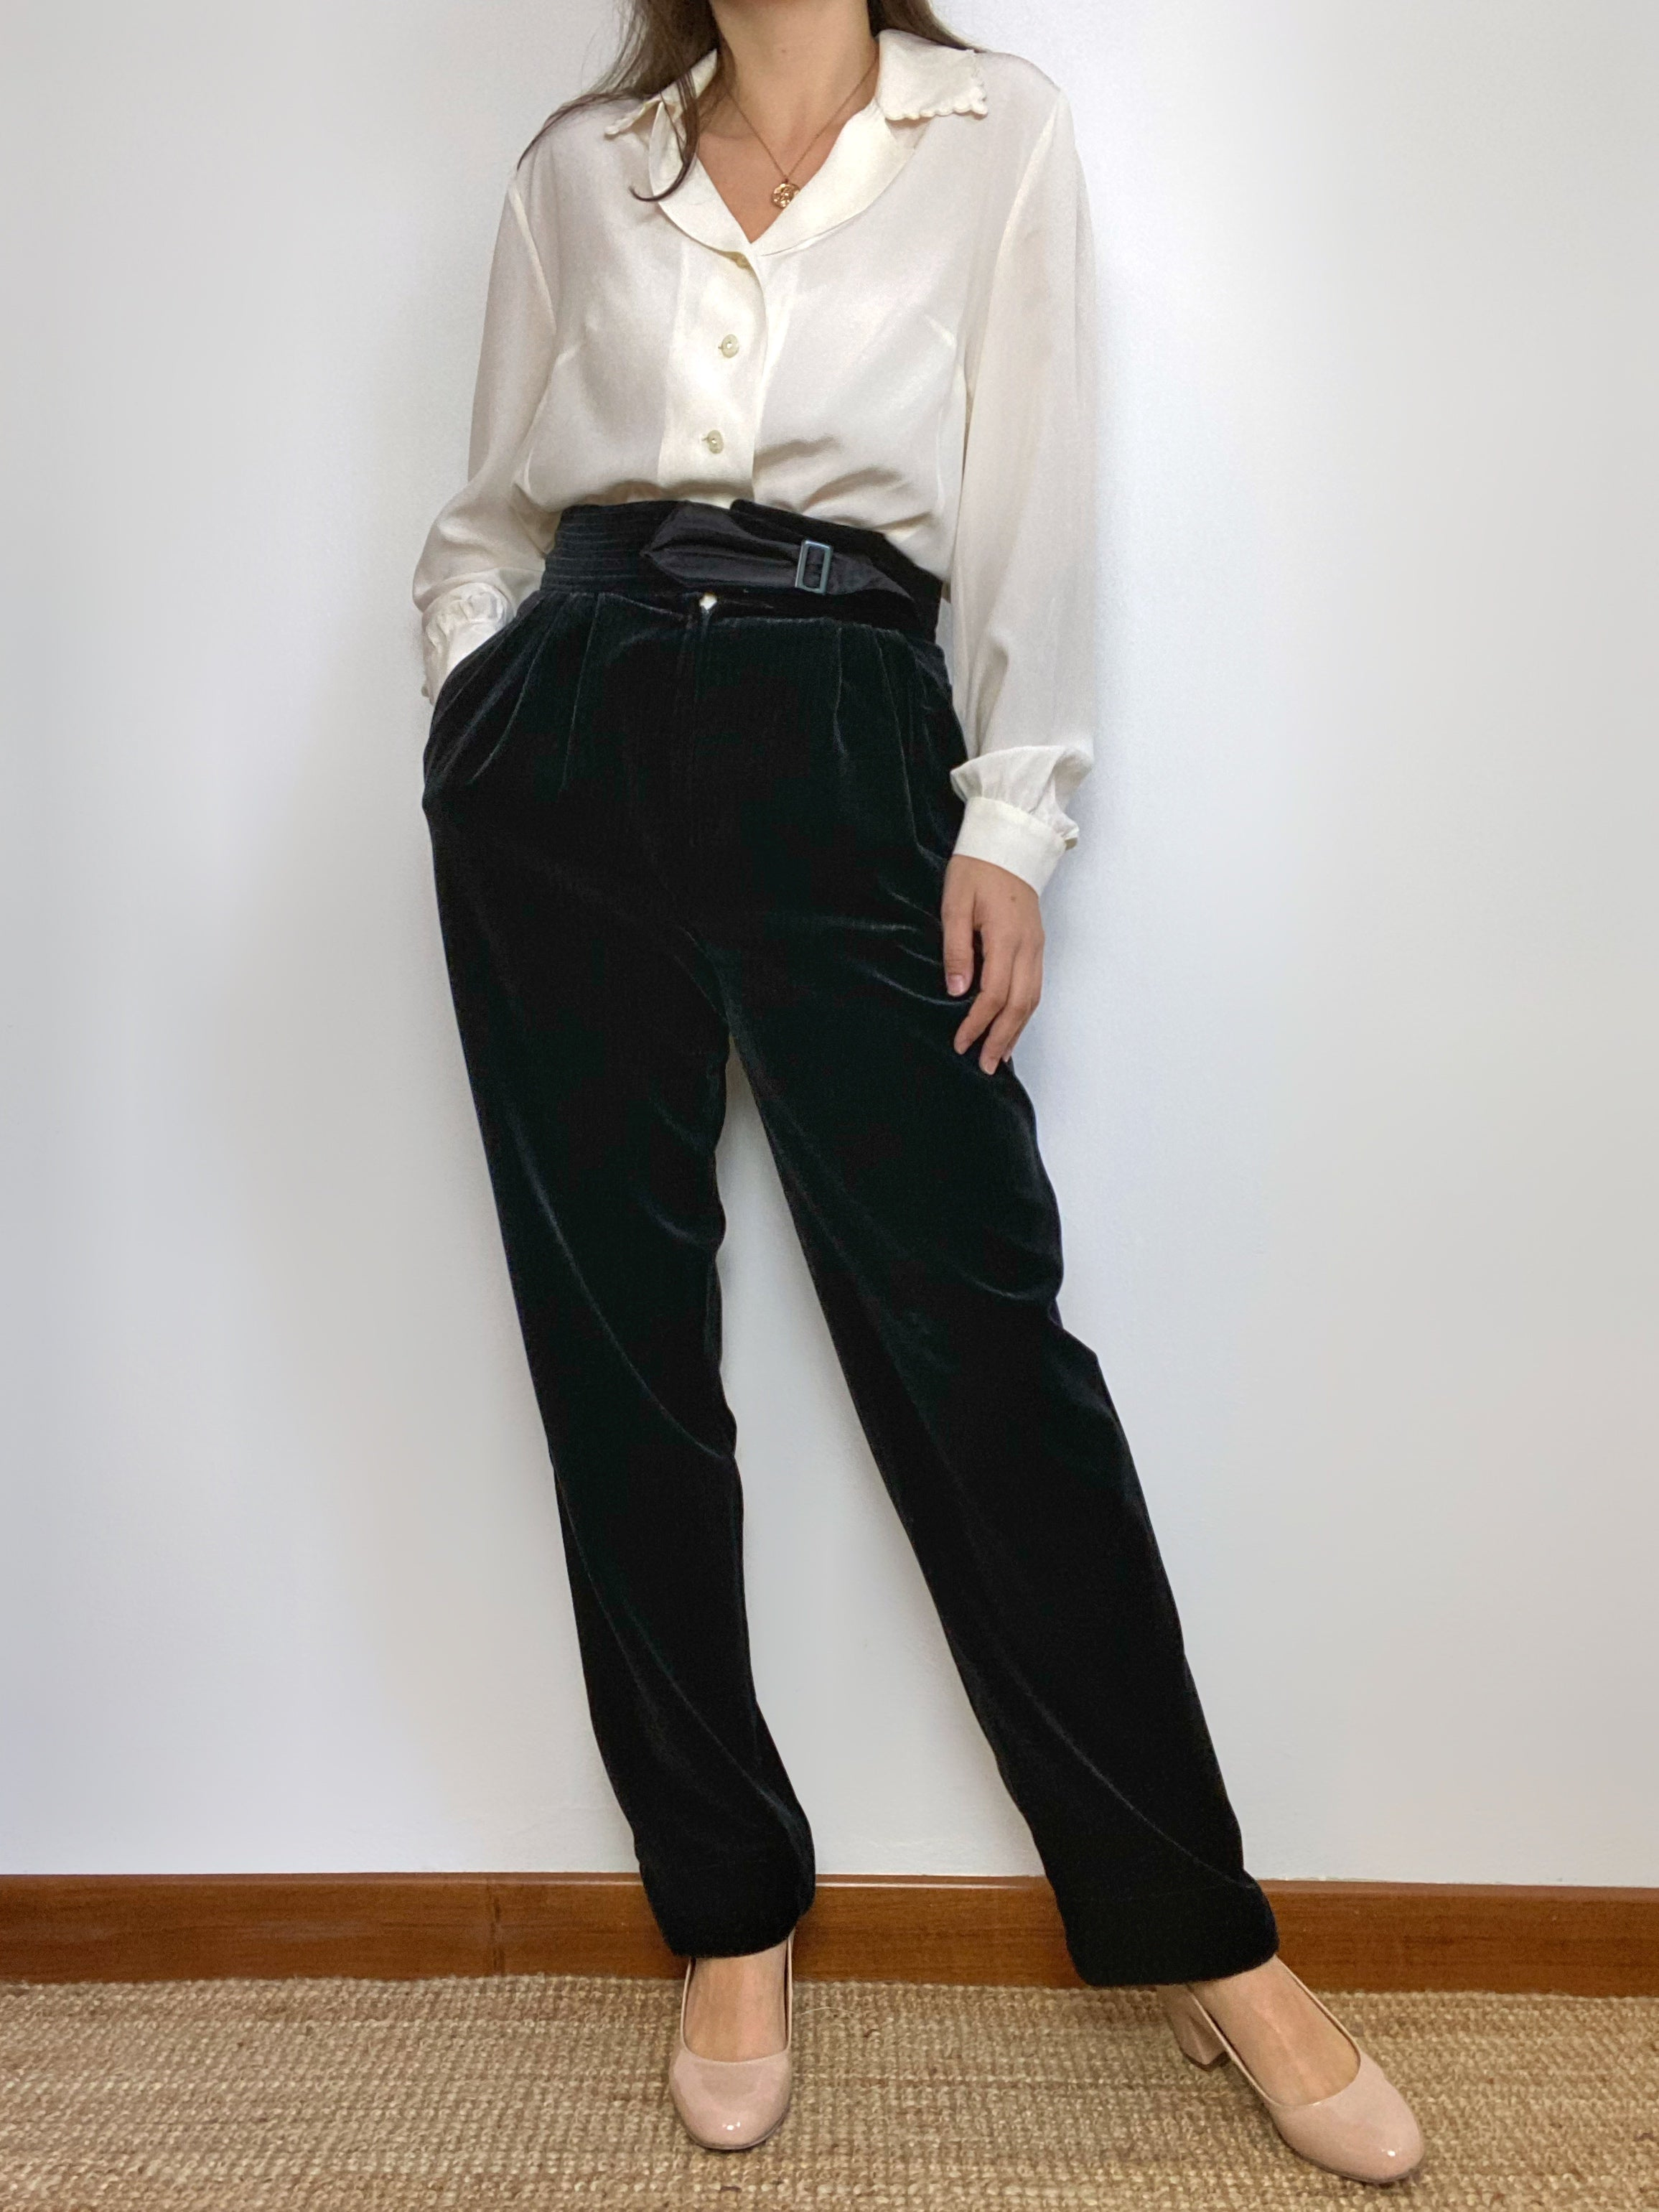 Vintage italian high waist black velvet pants